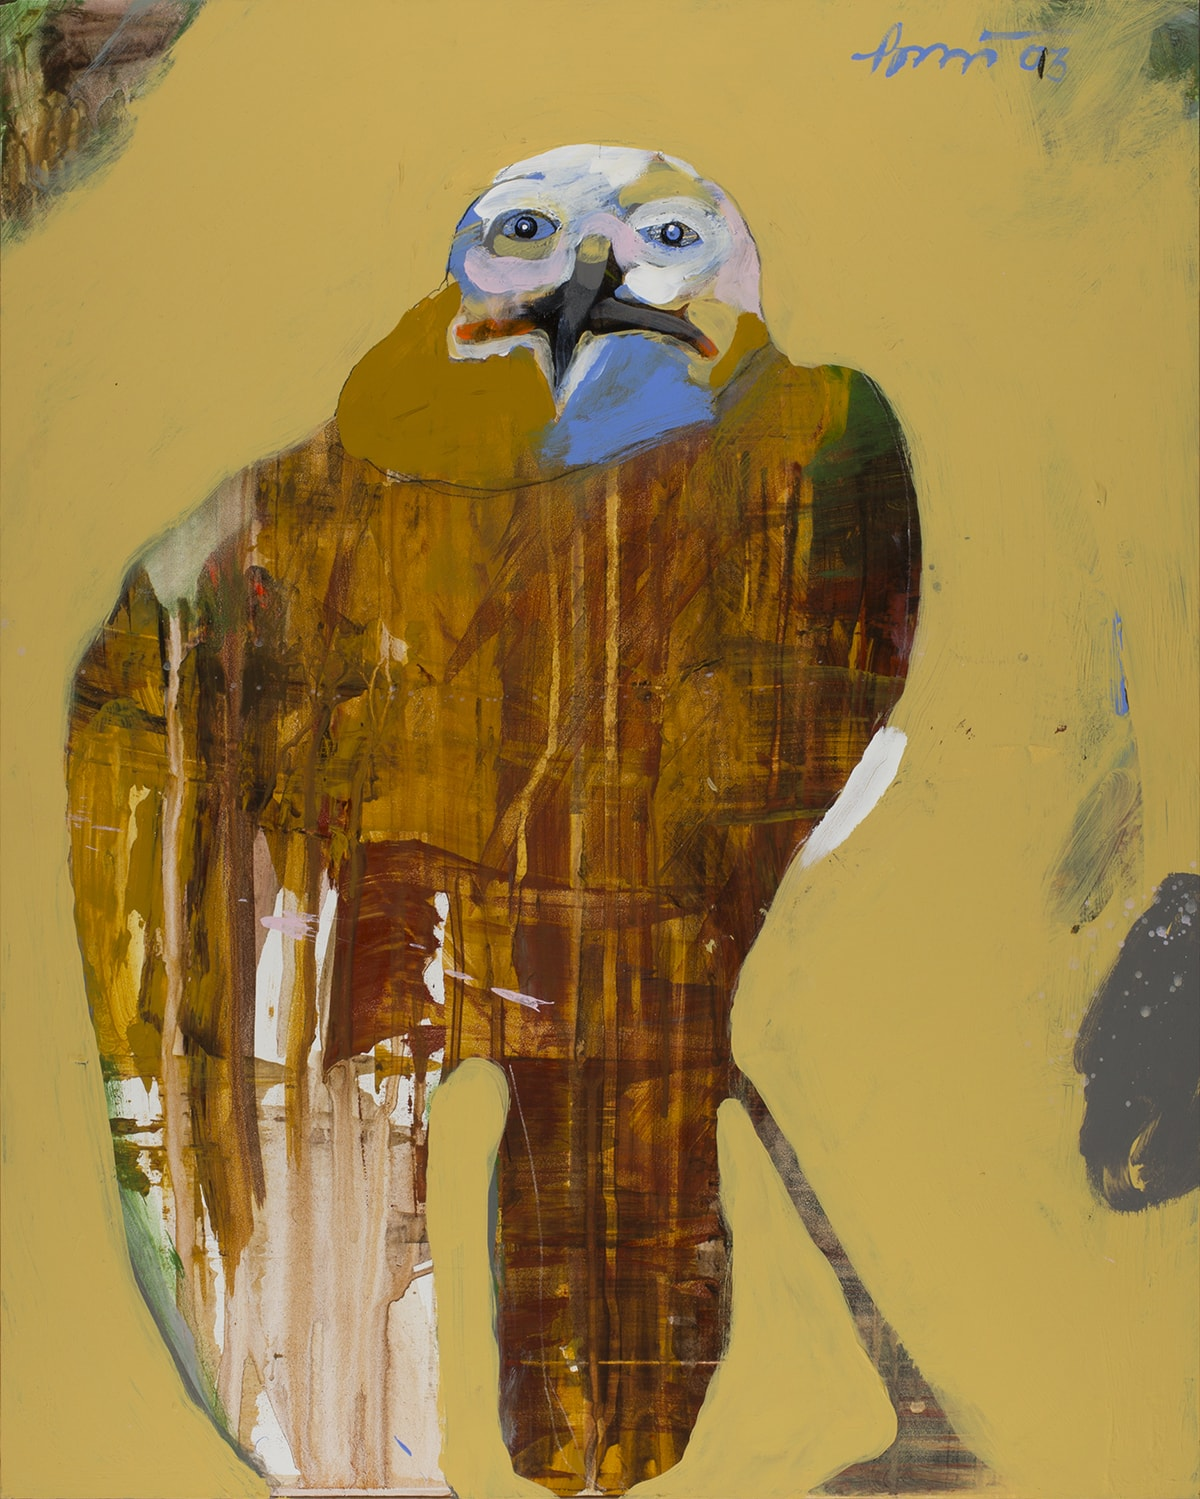 A vertical, rectangular, abstract painting of a bird, possibly an eagle, that takes up most of the frame. The head is painted with heavy brushstrokes in white, gold, pale pink and blue around human-like eyes. A large, black beak stretches horizontally into a grimace with reddish pigment at the corners. Under the beak is a large triangular area of blue brushwork. The body is rendered in a flat manner with paint layered, streaked, dripped and smudged creating horizontal and vertical lines in the paint. Towards the bottom, the body forks into two wing-like areas. Tan, brown, pink, gray and white make up the wing on the left, the right is primarily browns. A dark leg juts from the body of the bird to the right. The bird is shown in a mustard yellow background with visible brushwork. Areas like the upper left and right corners reveal underpainting in browns, greens and gray. The artist's signature is at top right in blue.